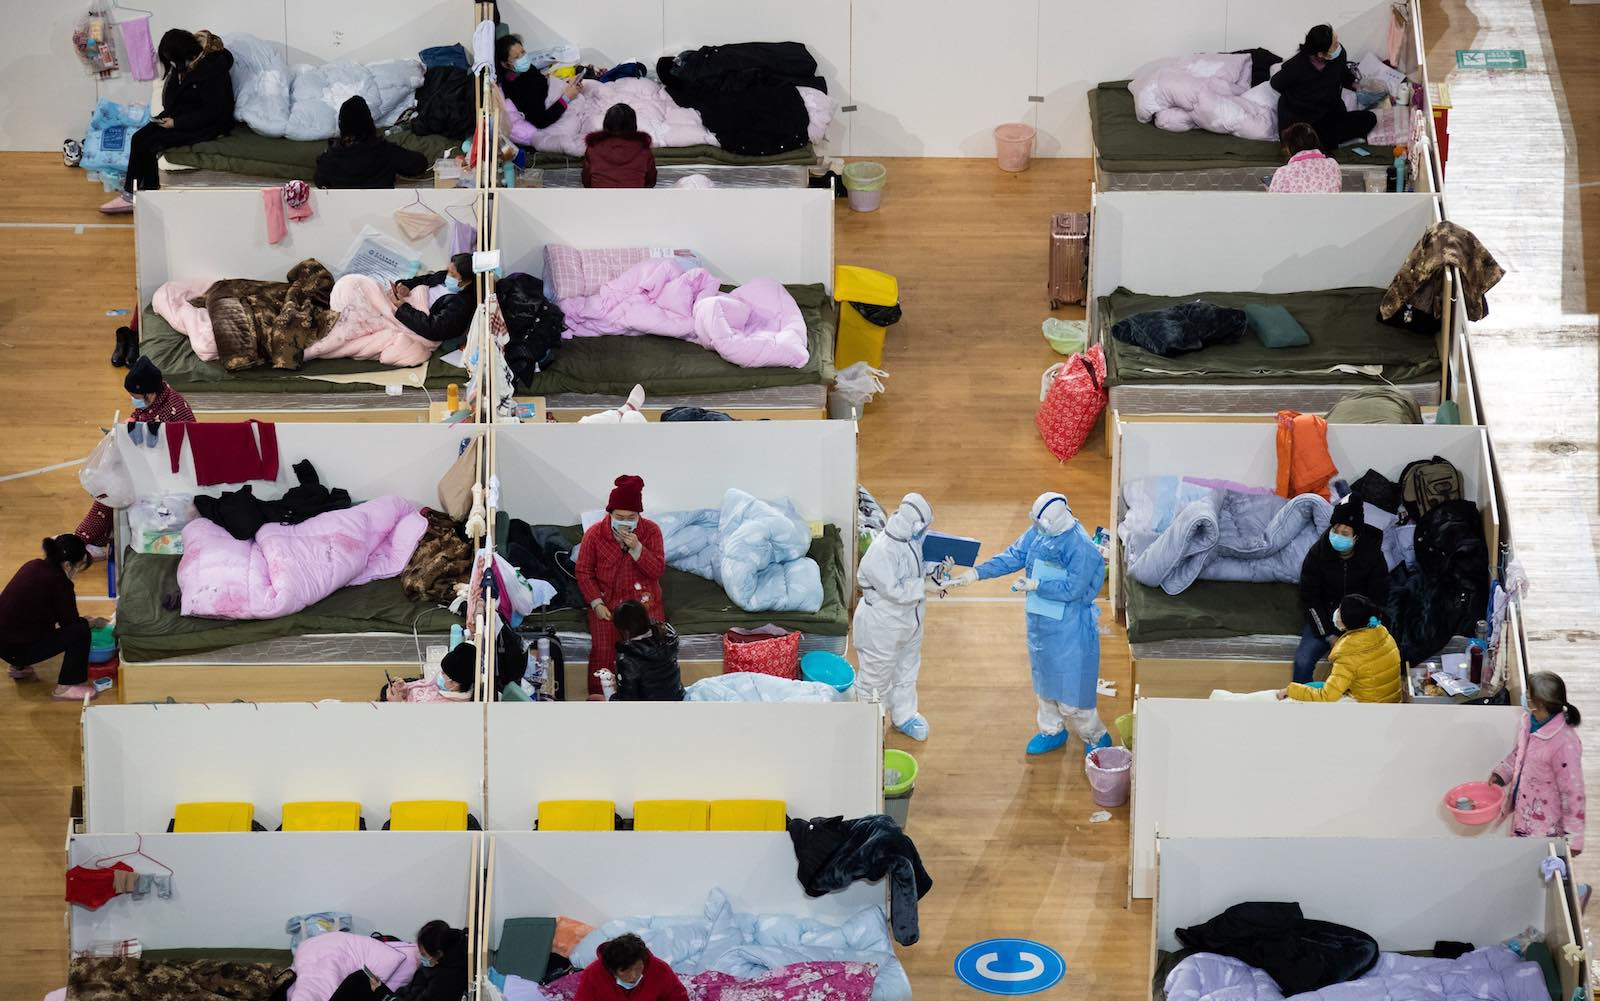 Patients with mild symptoms of the COVID-19 coronavirus in a temporary hospital at a sports stadium in Wuhan, China (STR via Getty Images)